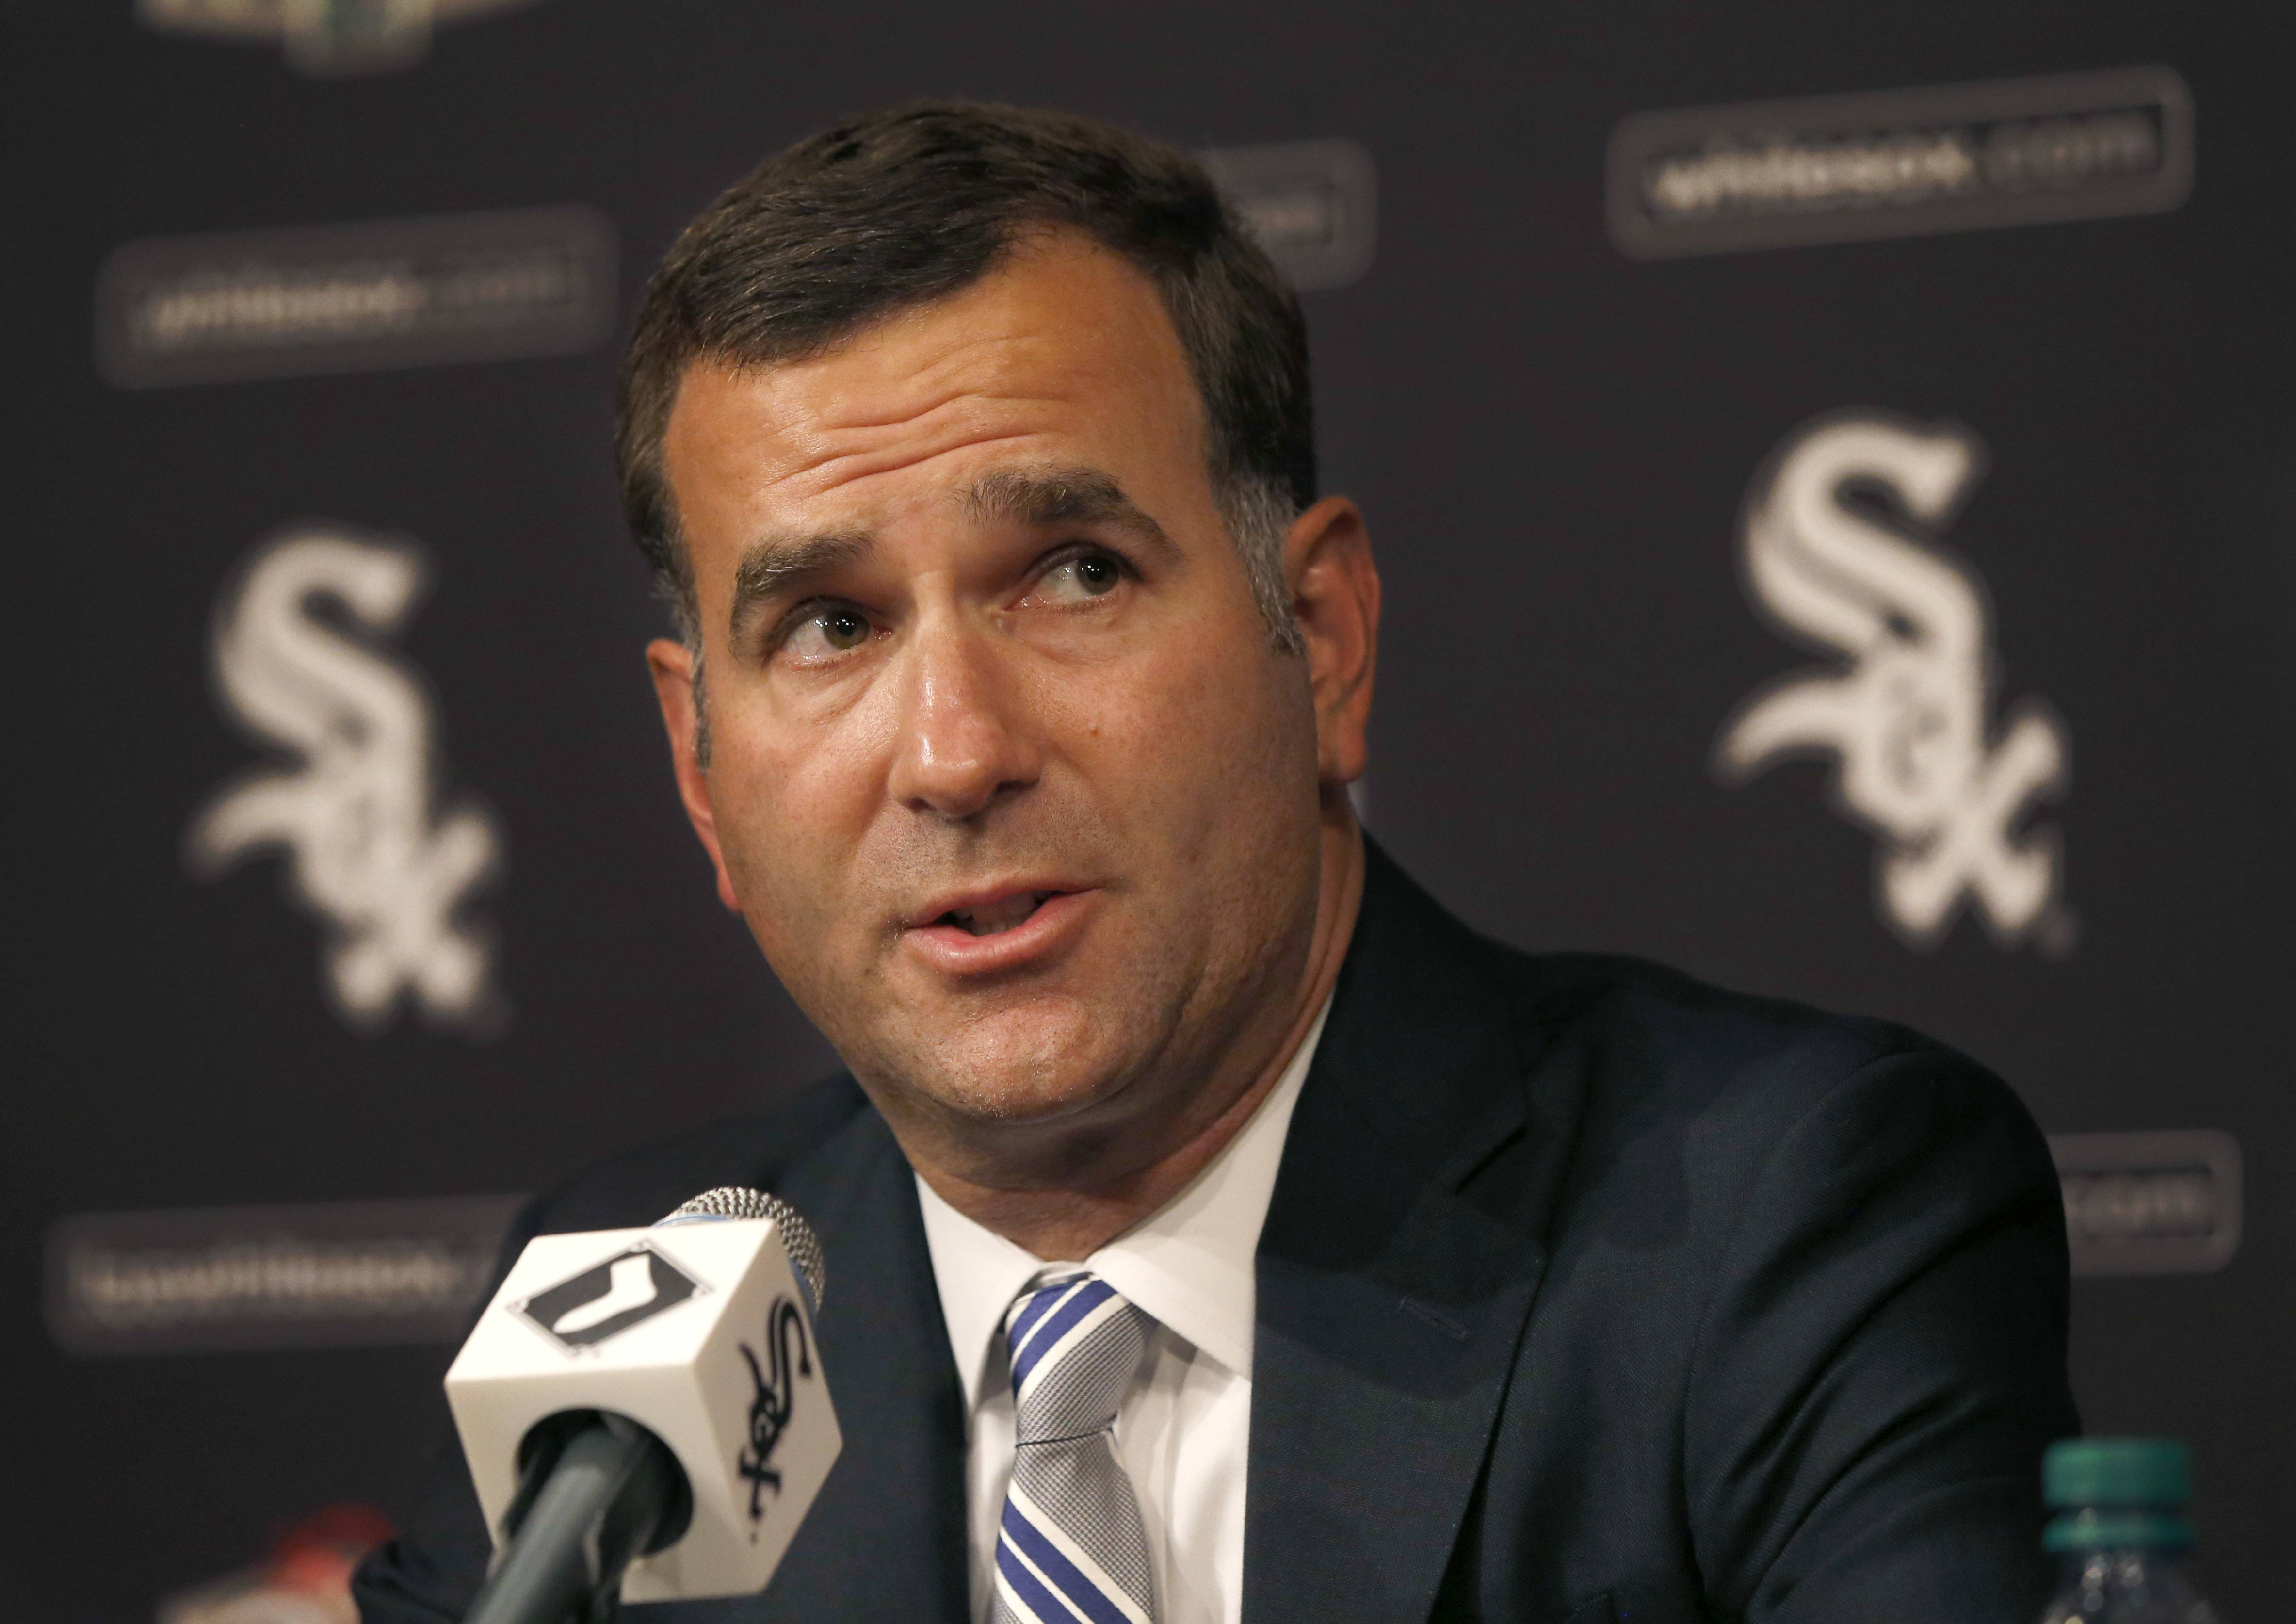 Although the White Sox's seem to be rebuilding at a quick pace — some even talk of a 2018 playoff run — general manager Rick Hahn hasn't put any kind of timeline on the process just yet.